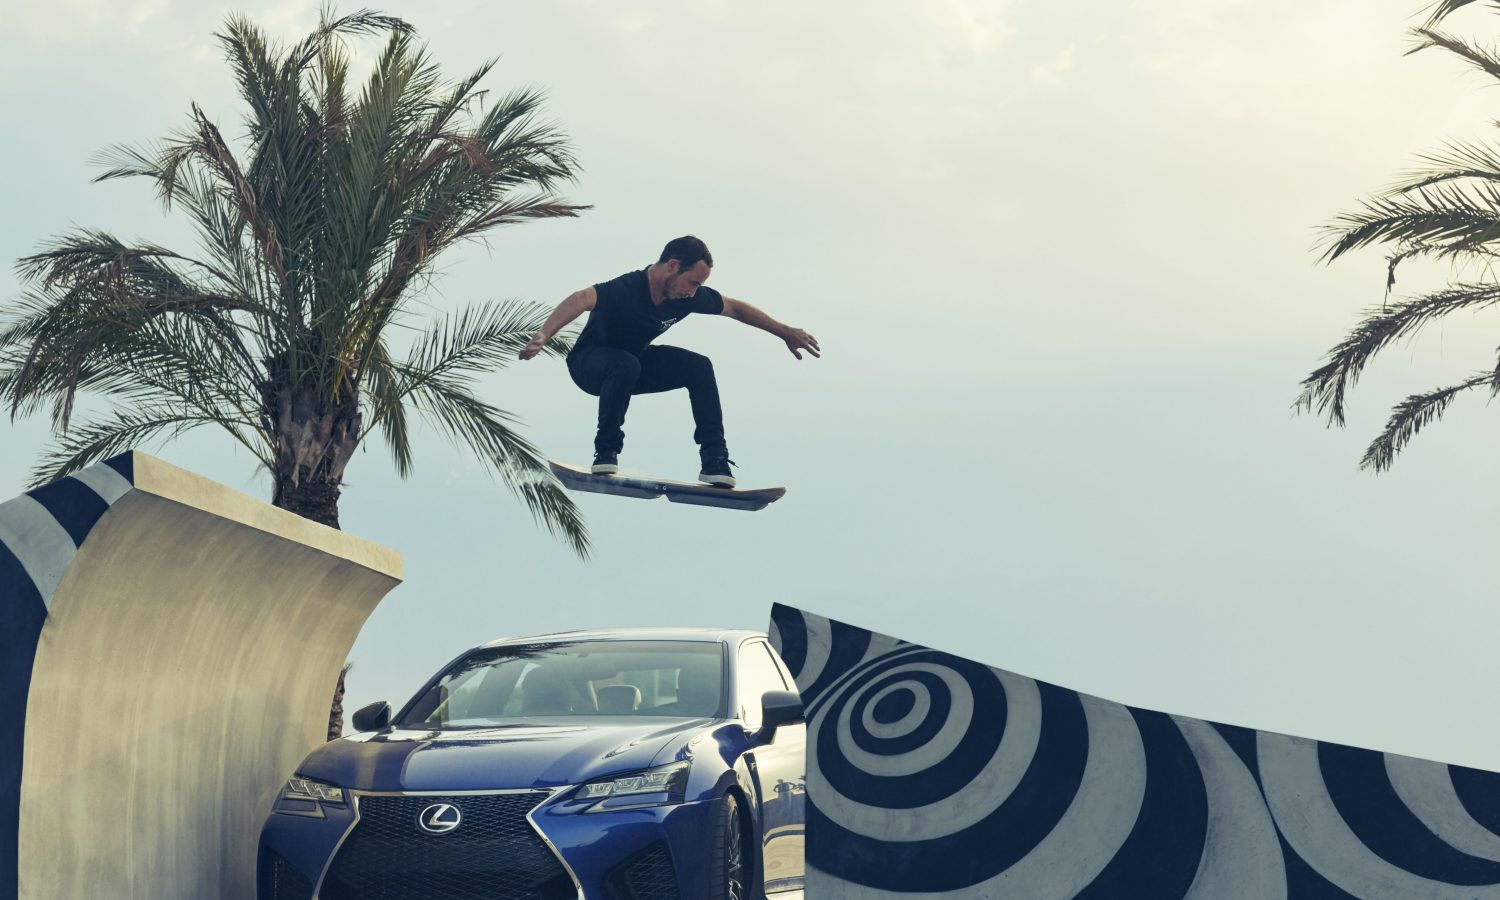 Lexus Hoverboard Ride Revealed